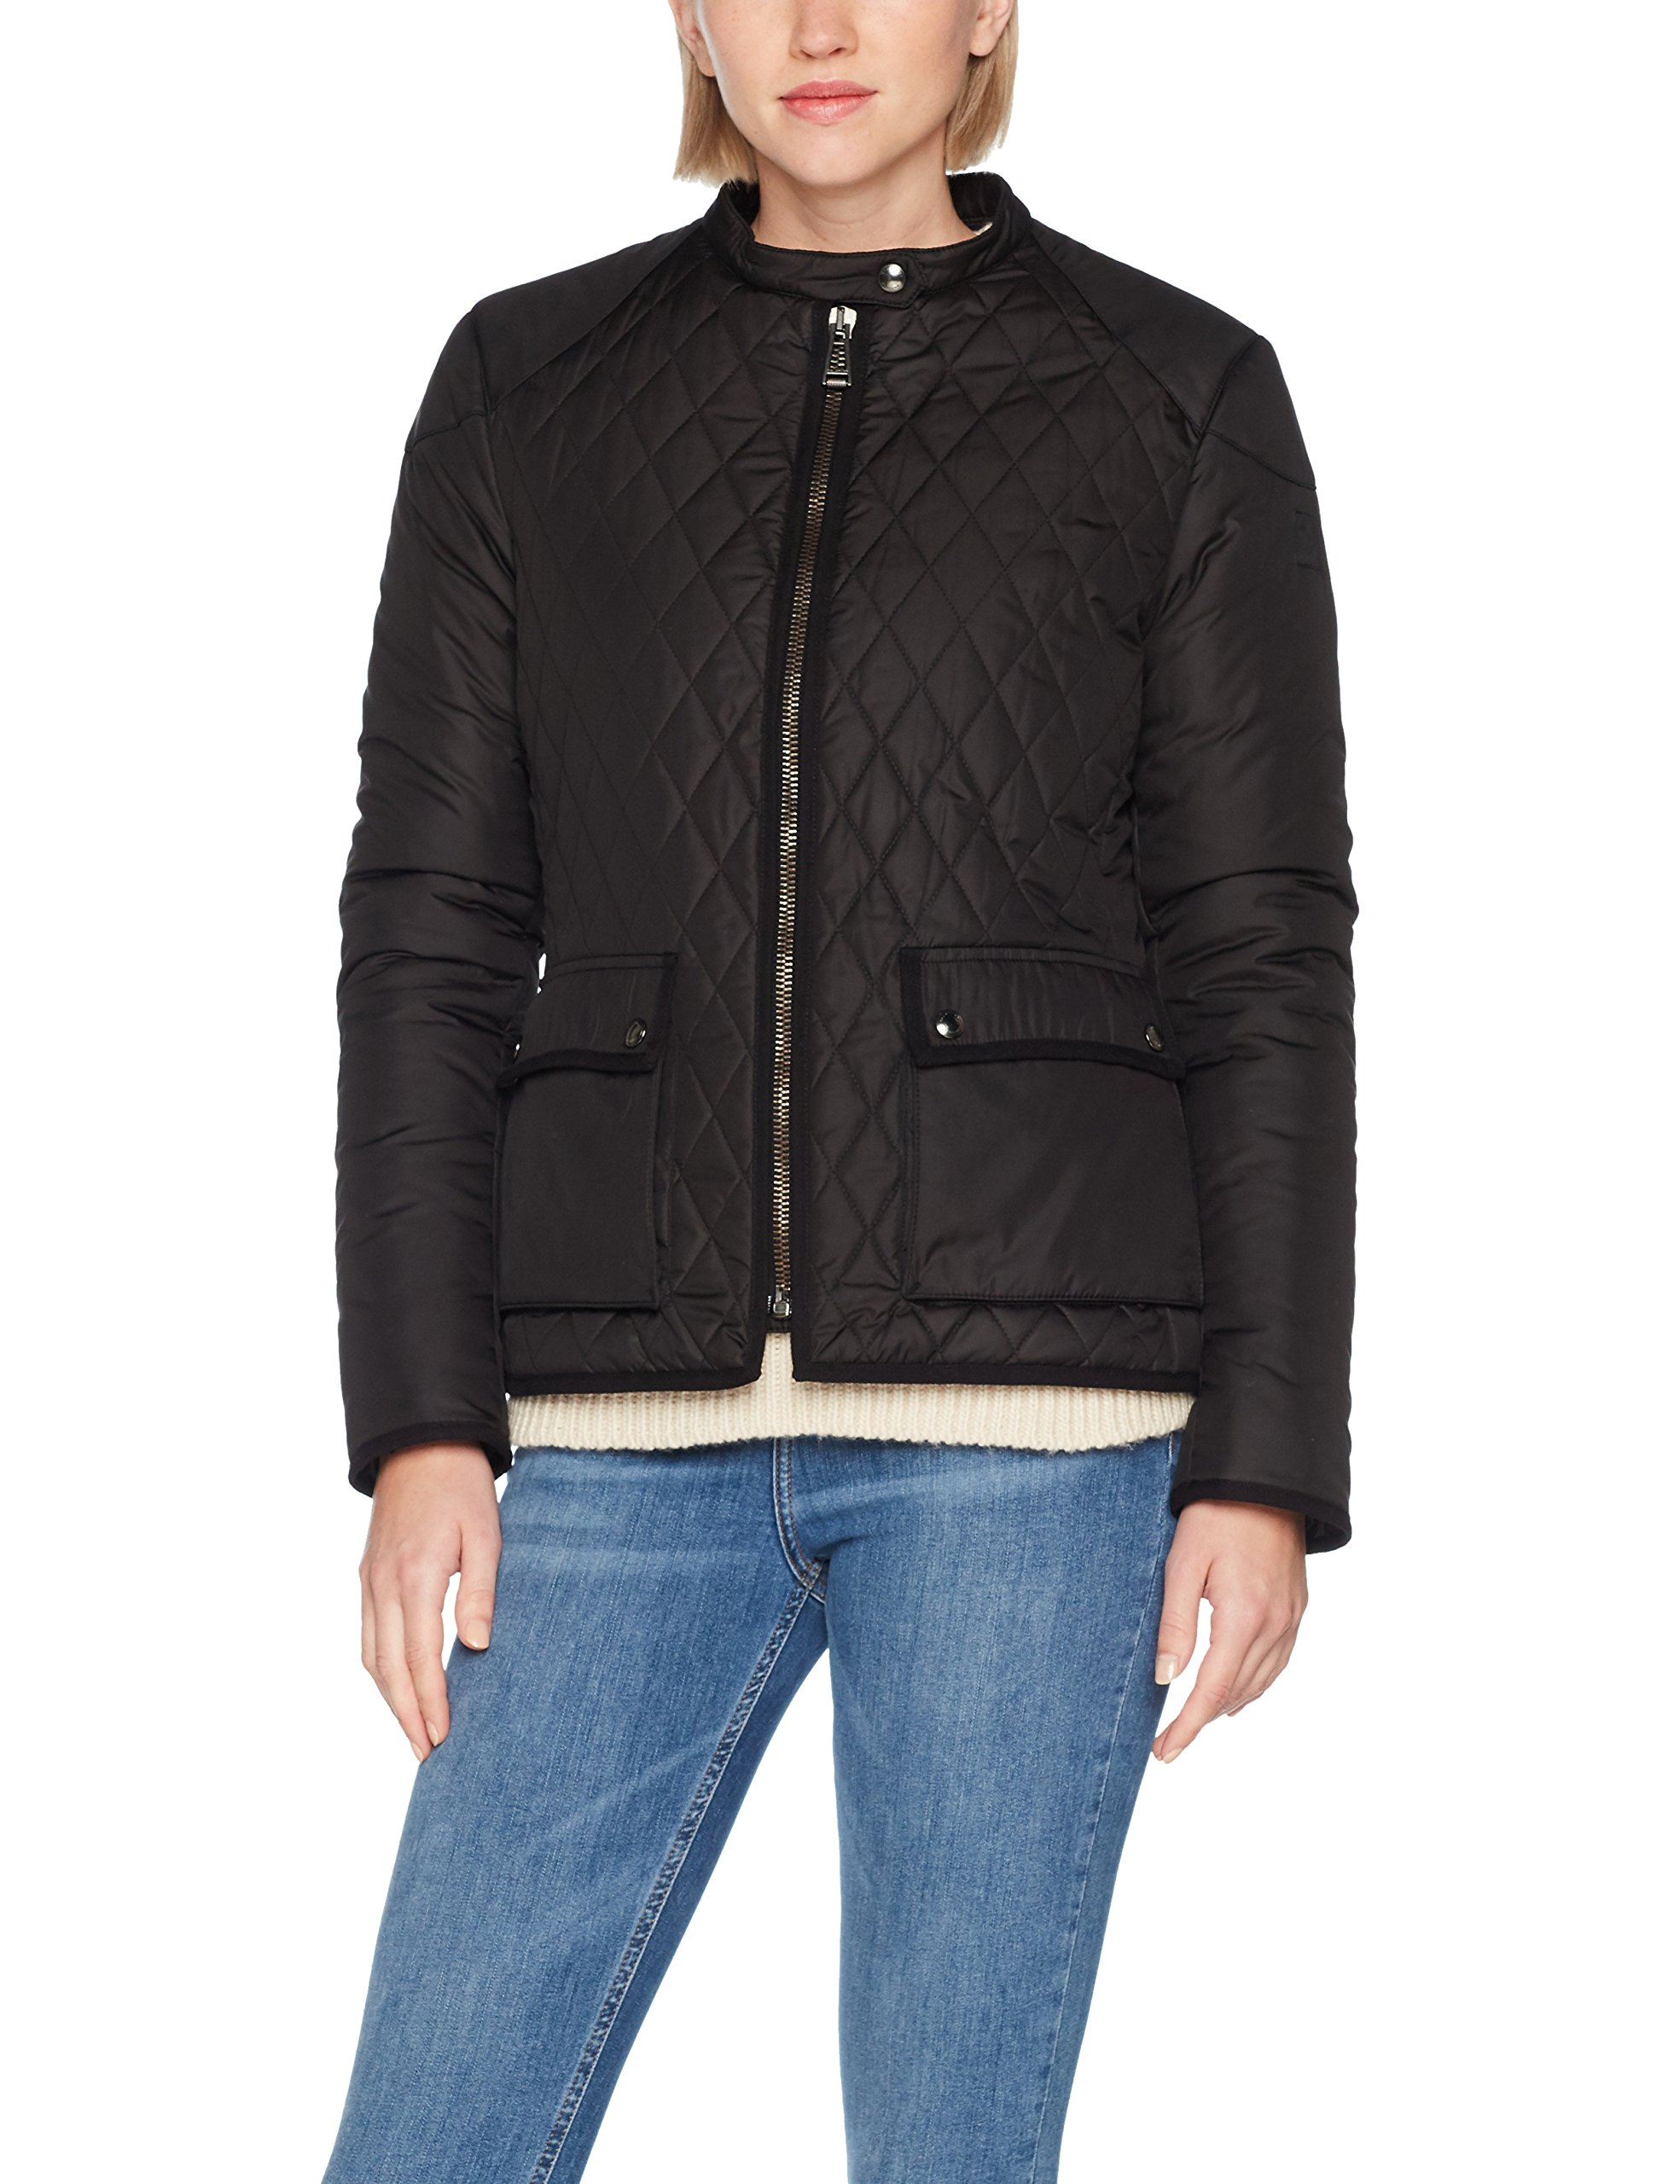 WomanBlouson 9000048 Jacket Quilted Belstaff Randall 0 2 FemmeNoirblack yv0wONm8nP